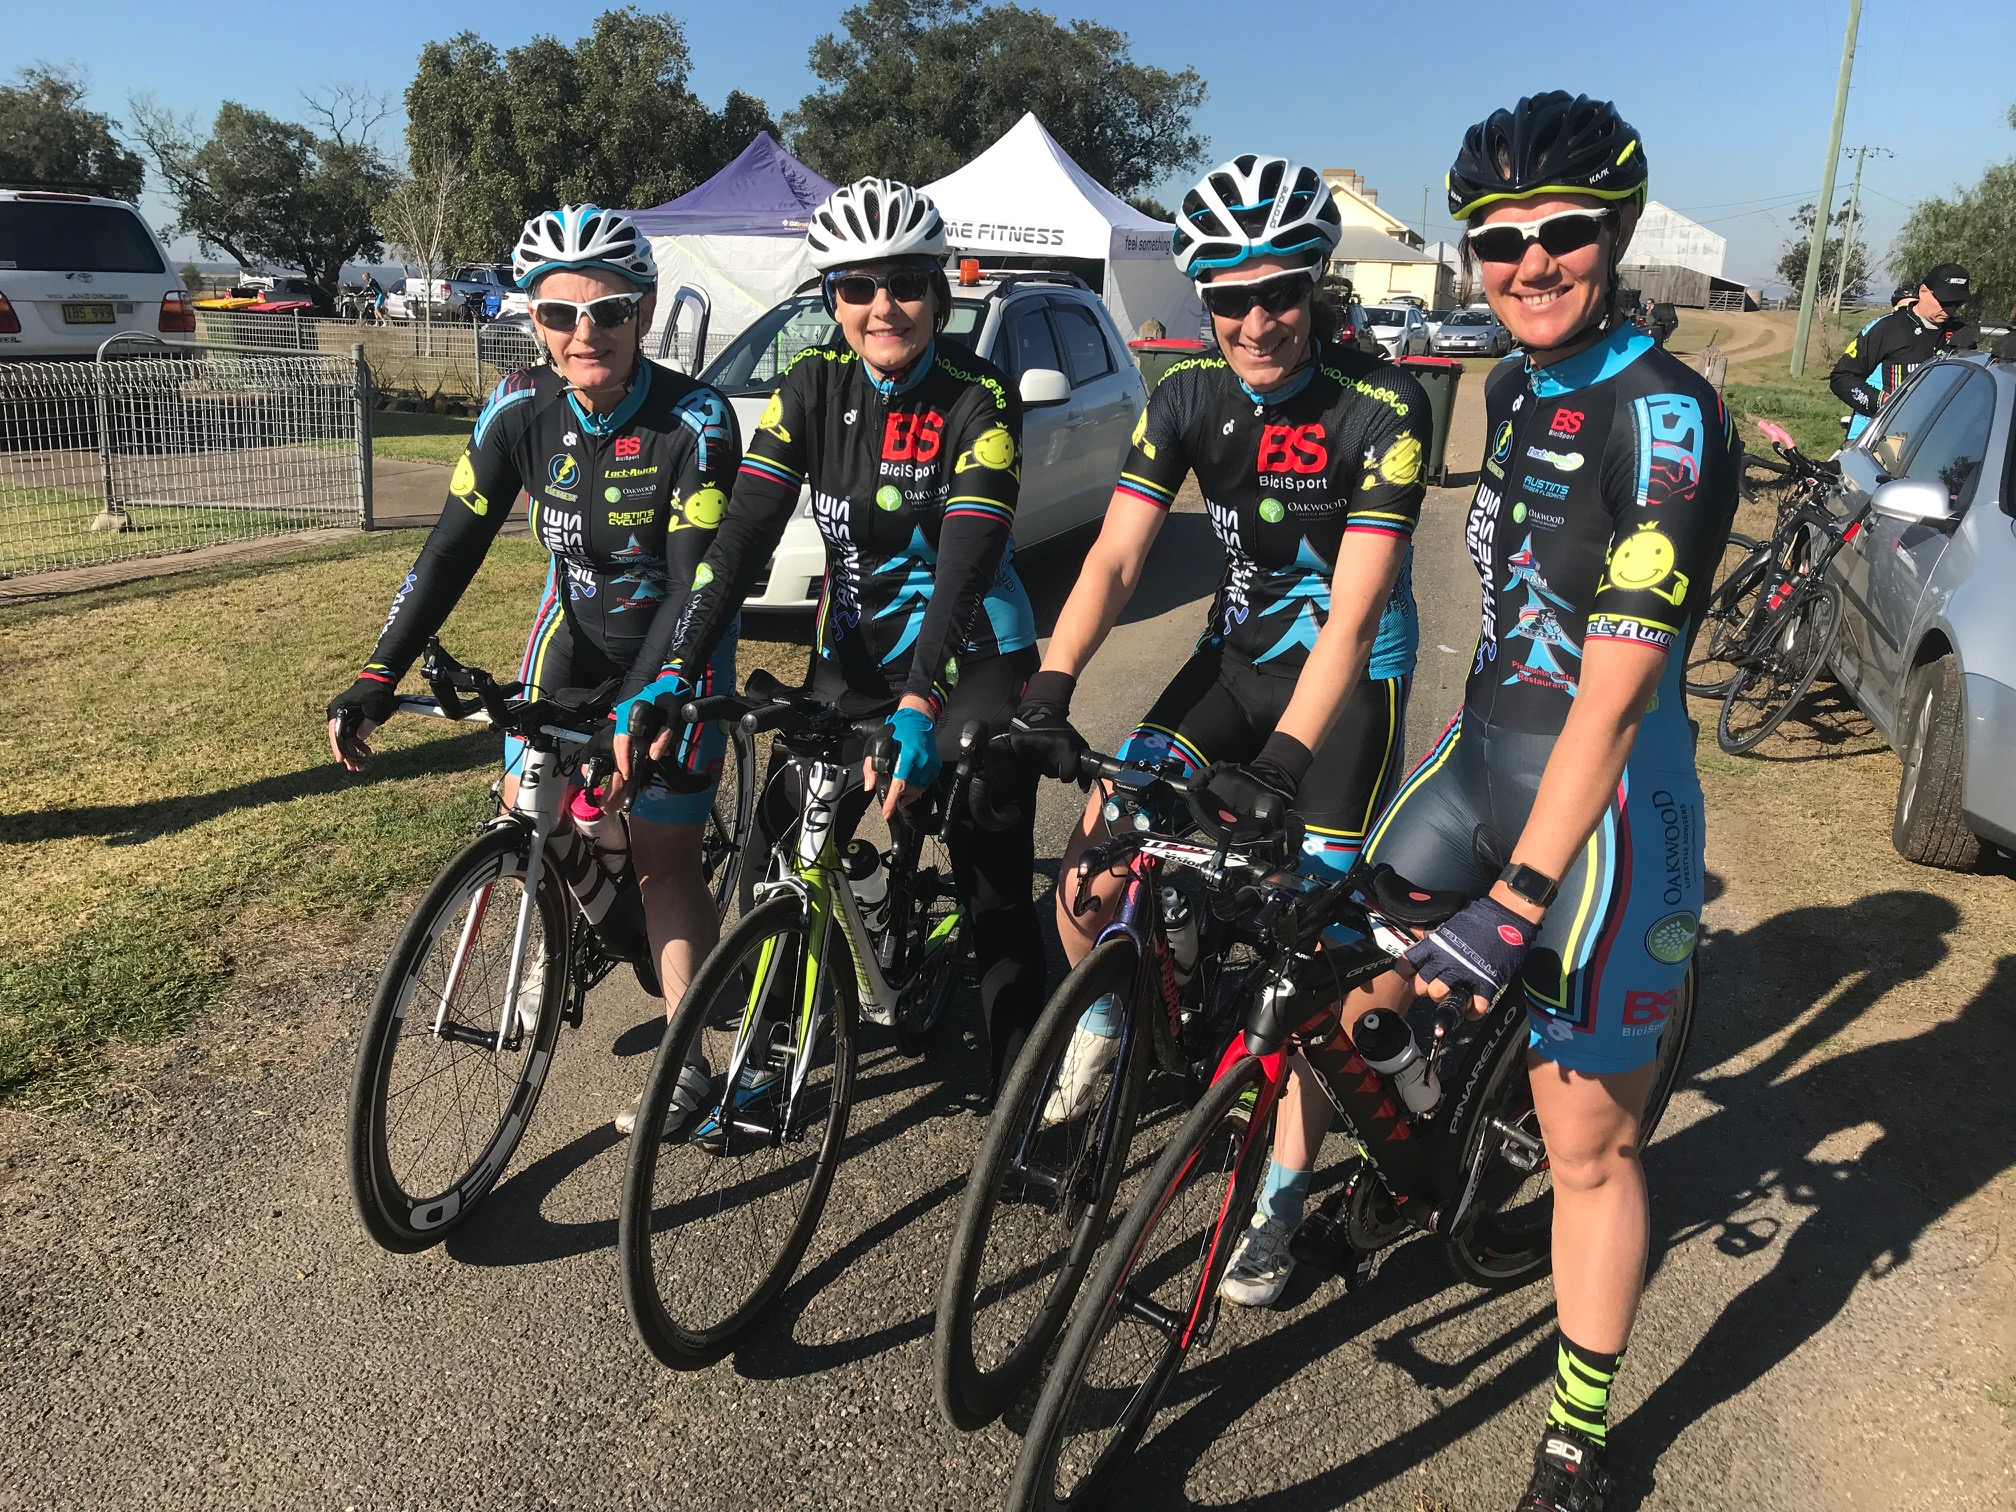 NSW Team Time Trial @ 3 August - Kirsty Flanagan, Melissa Budd, Cat Haines & Ruth Strapp. Melissa had a mechanical at the 5k mark and the team rode well with 3 riders.